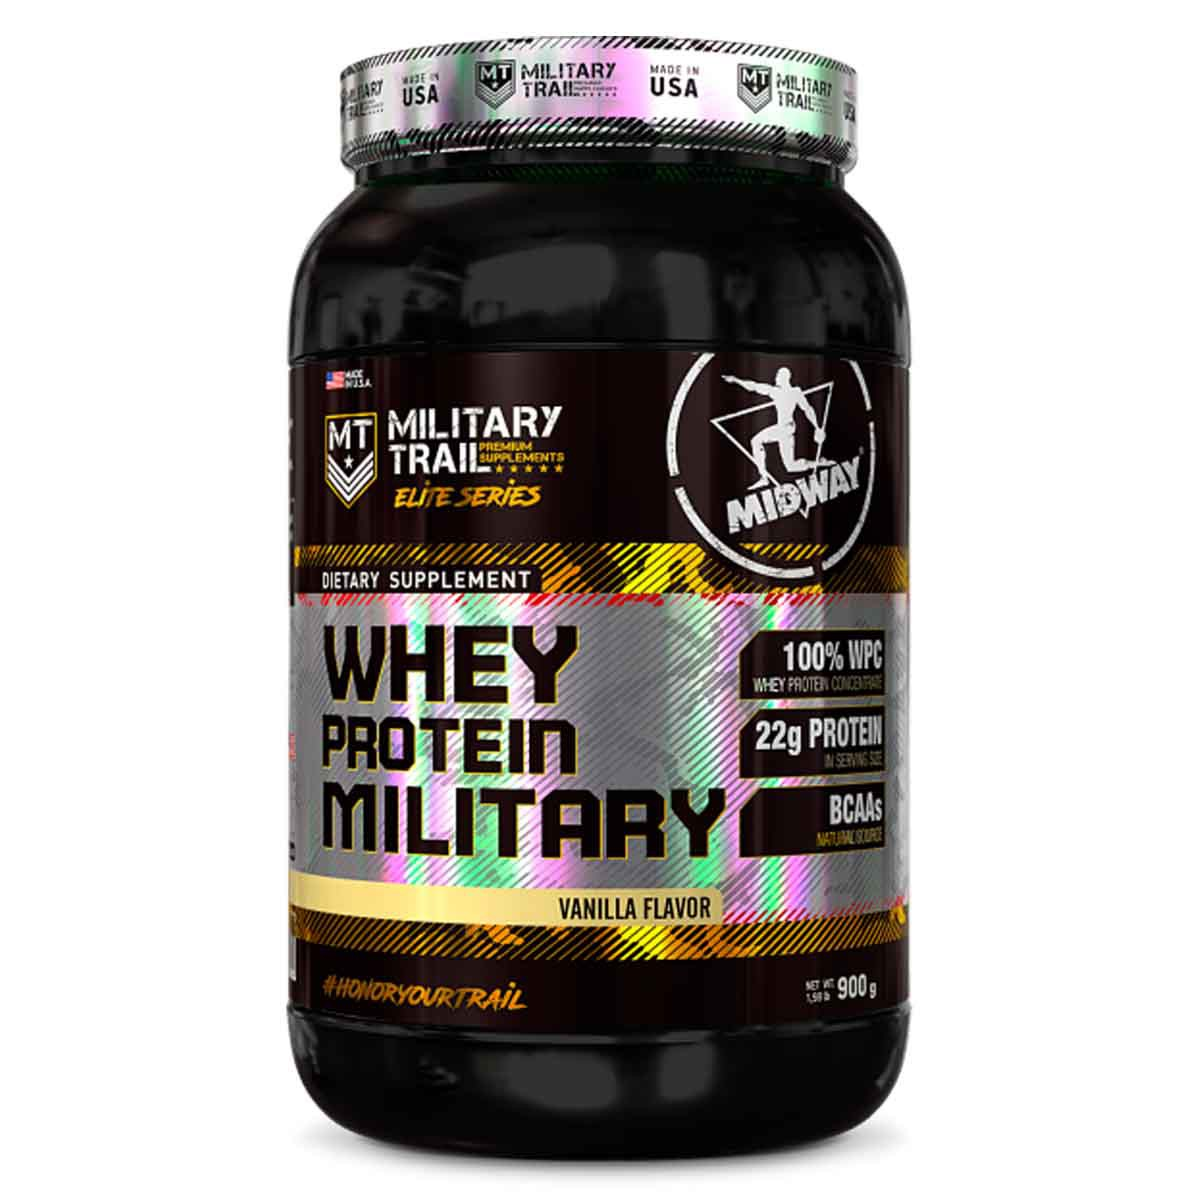 Whey Protein Military 900g - Midway